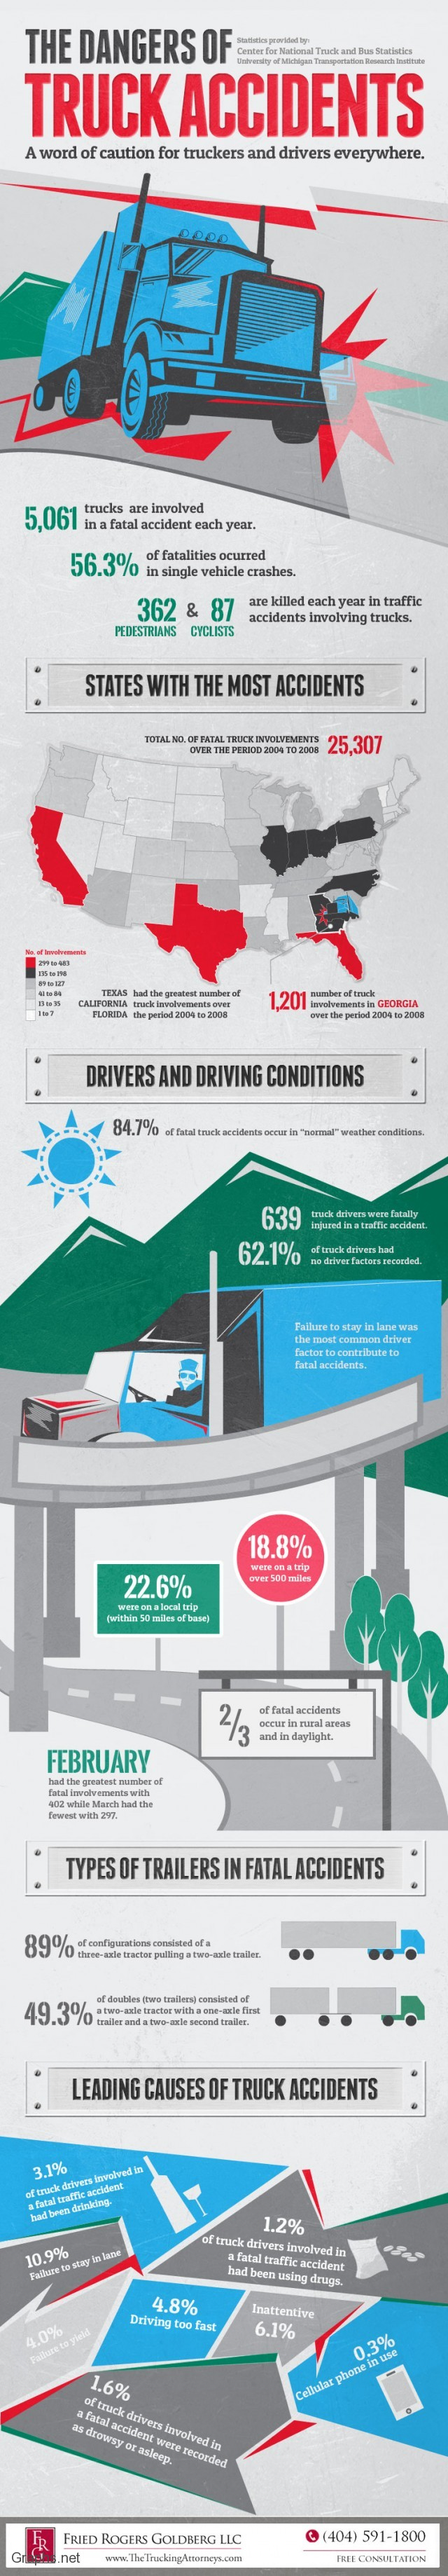 Truck accidents and dangers attached to them